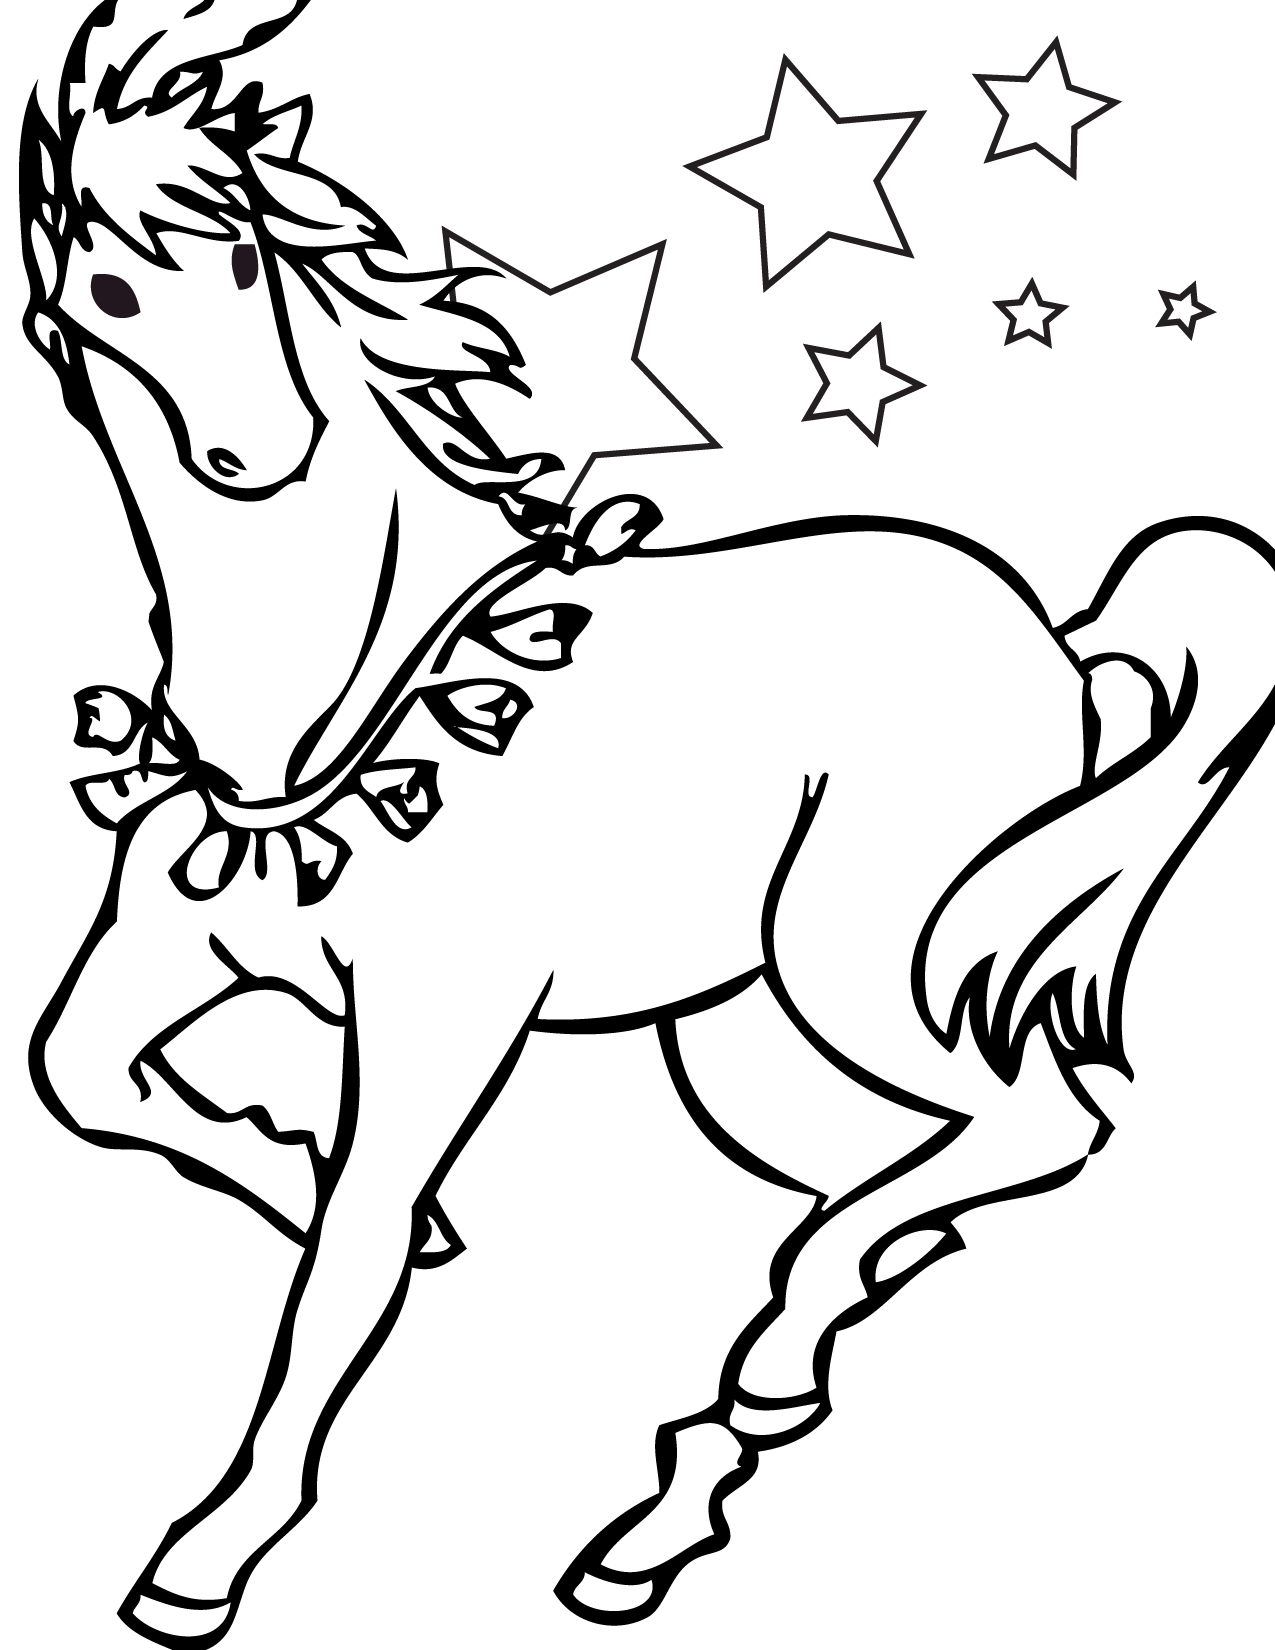 free coloring pages of horses - Horses Printable Coloring Pages